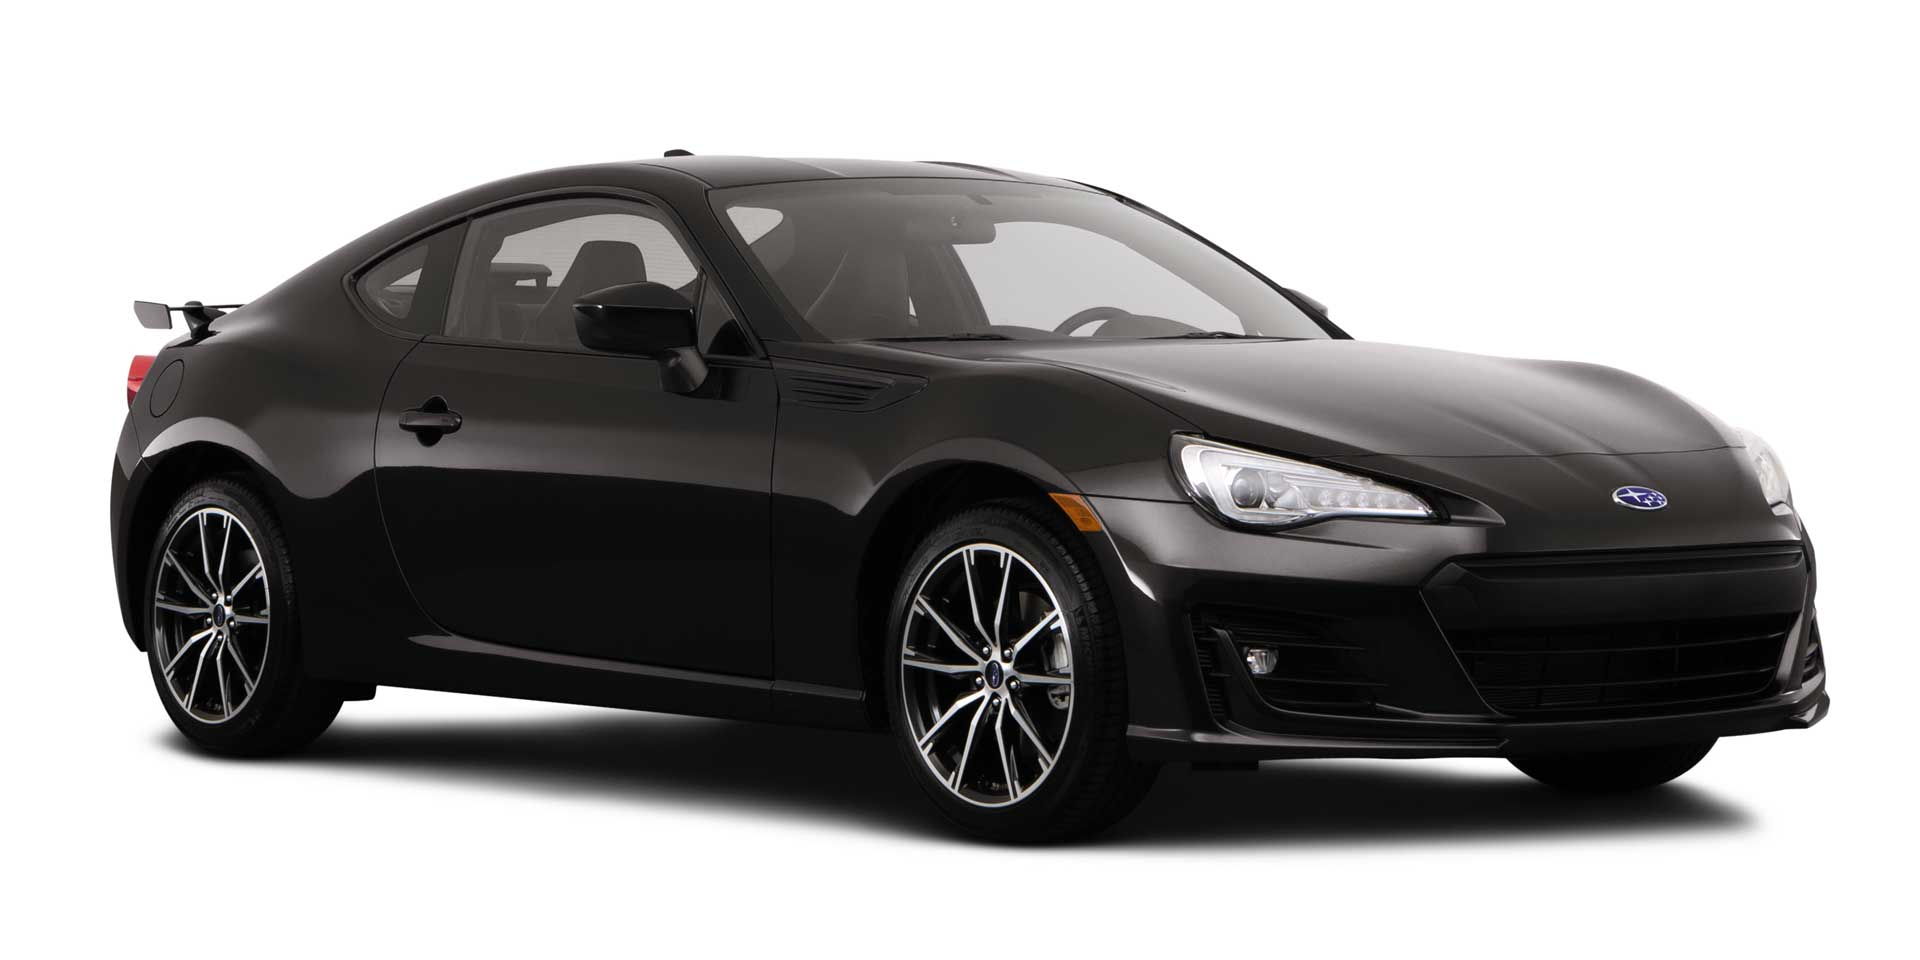 2017 Subaru BRZ: Mechanically Similar To The Toyota 86 (formerly The Scion  FR S), The 2017 Subaru BRZ Is A Sporty Two Door Sports Car That Seats Four  And ...